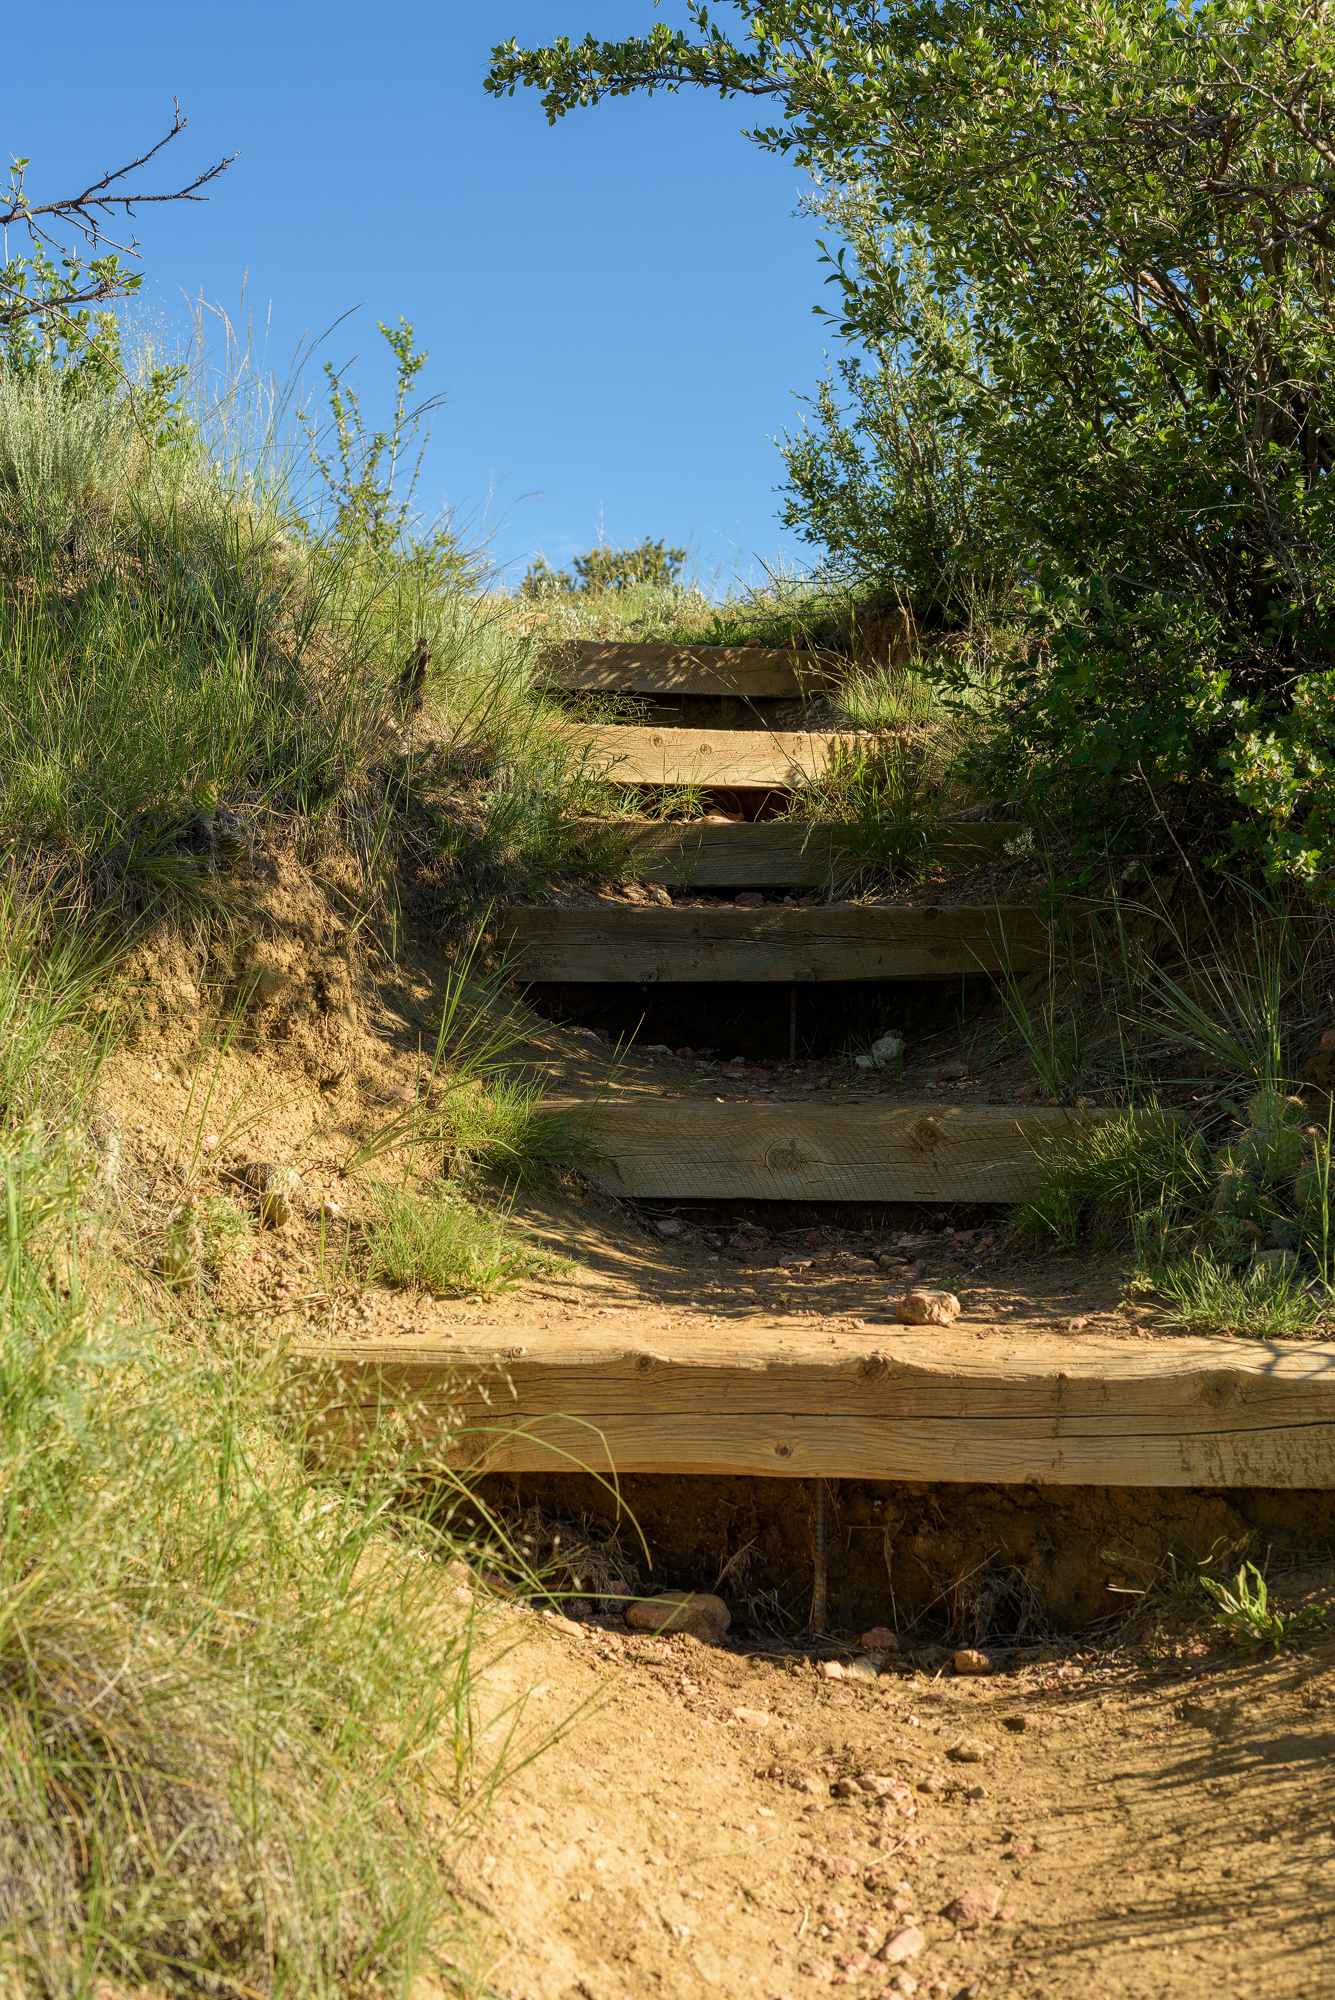 Break Trail | Colorado Hiking, Camping, and Landscape Photography Blog